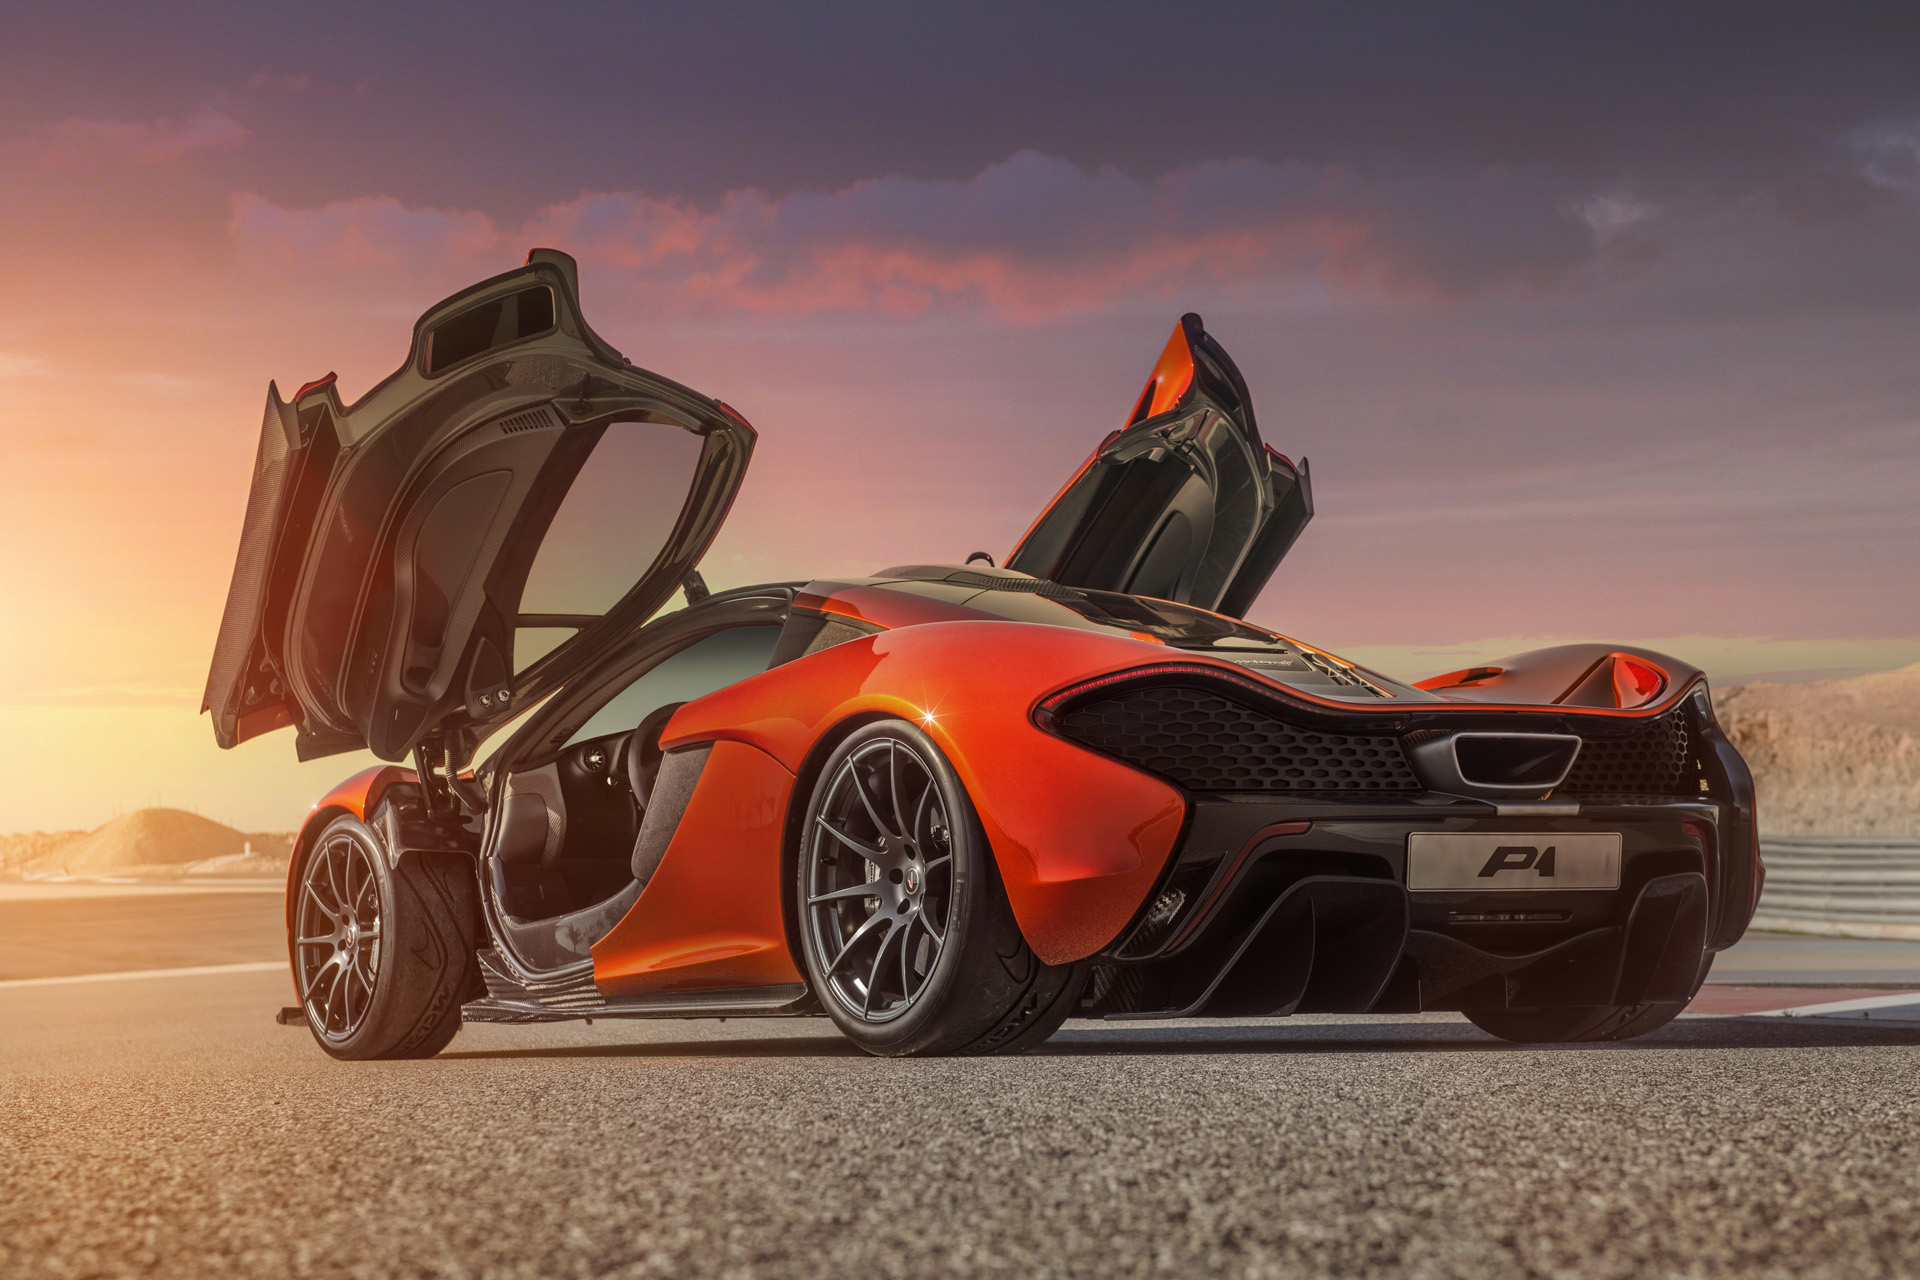 New Mclaren P1 High Res Images Released  Forcegtcom